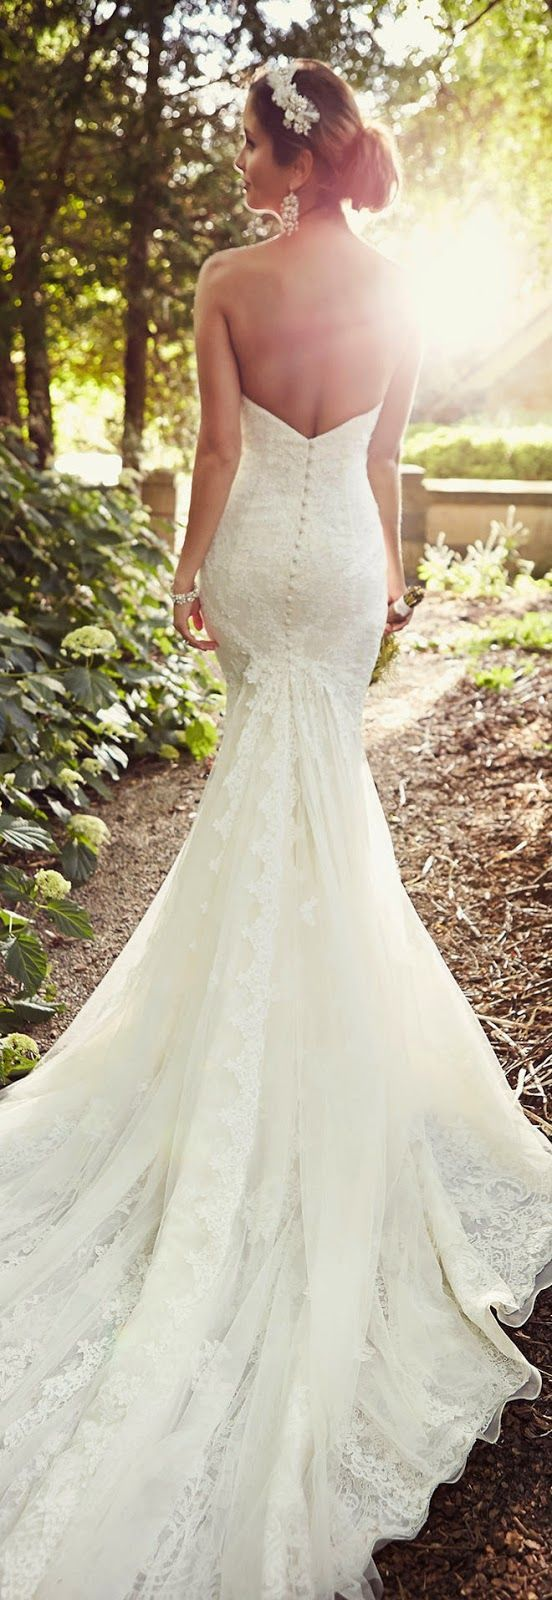 Essense of Australia Backless Lace Mermaid Wedding Dress / http://www.deerpearlflowers.com/52-perfect-low-back-wedding-dresses/